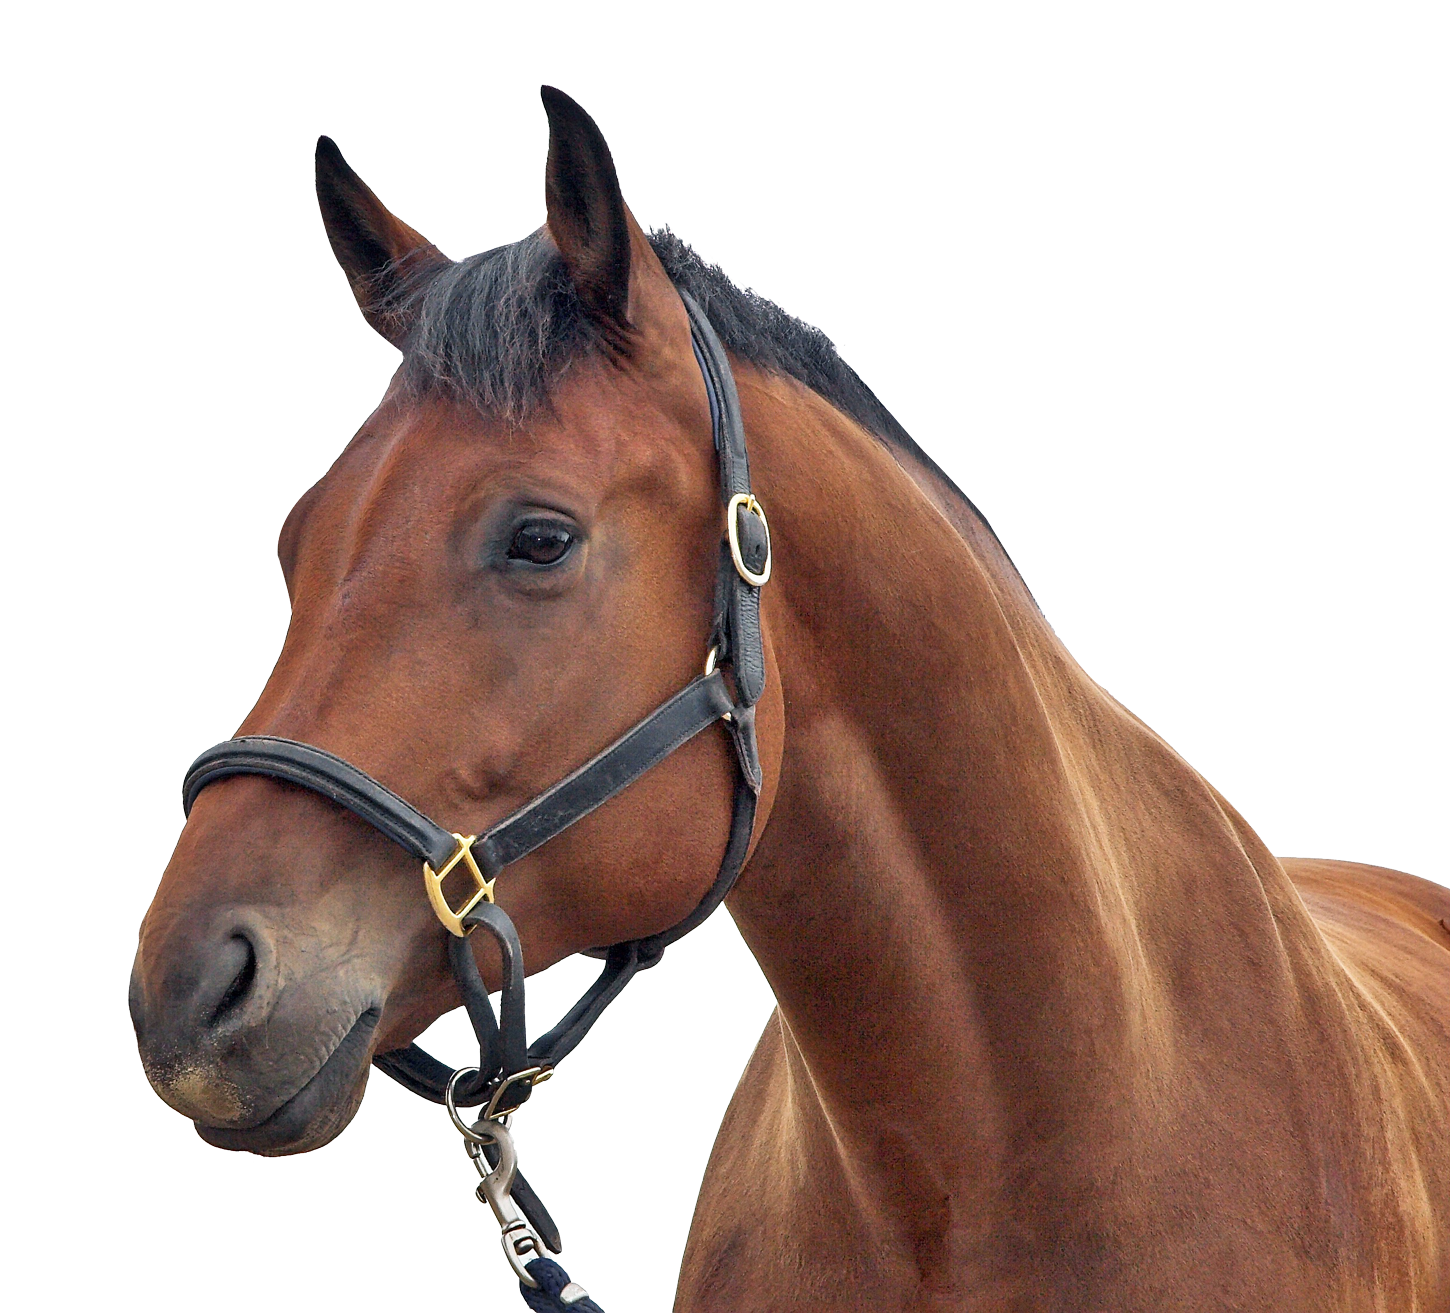 Horse Png Free Images Race Horse British Horse Horses Free Transparent Png Logos